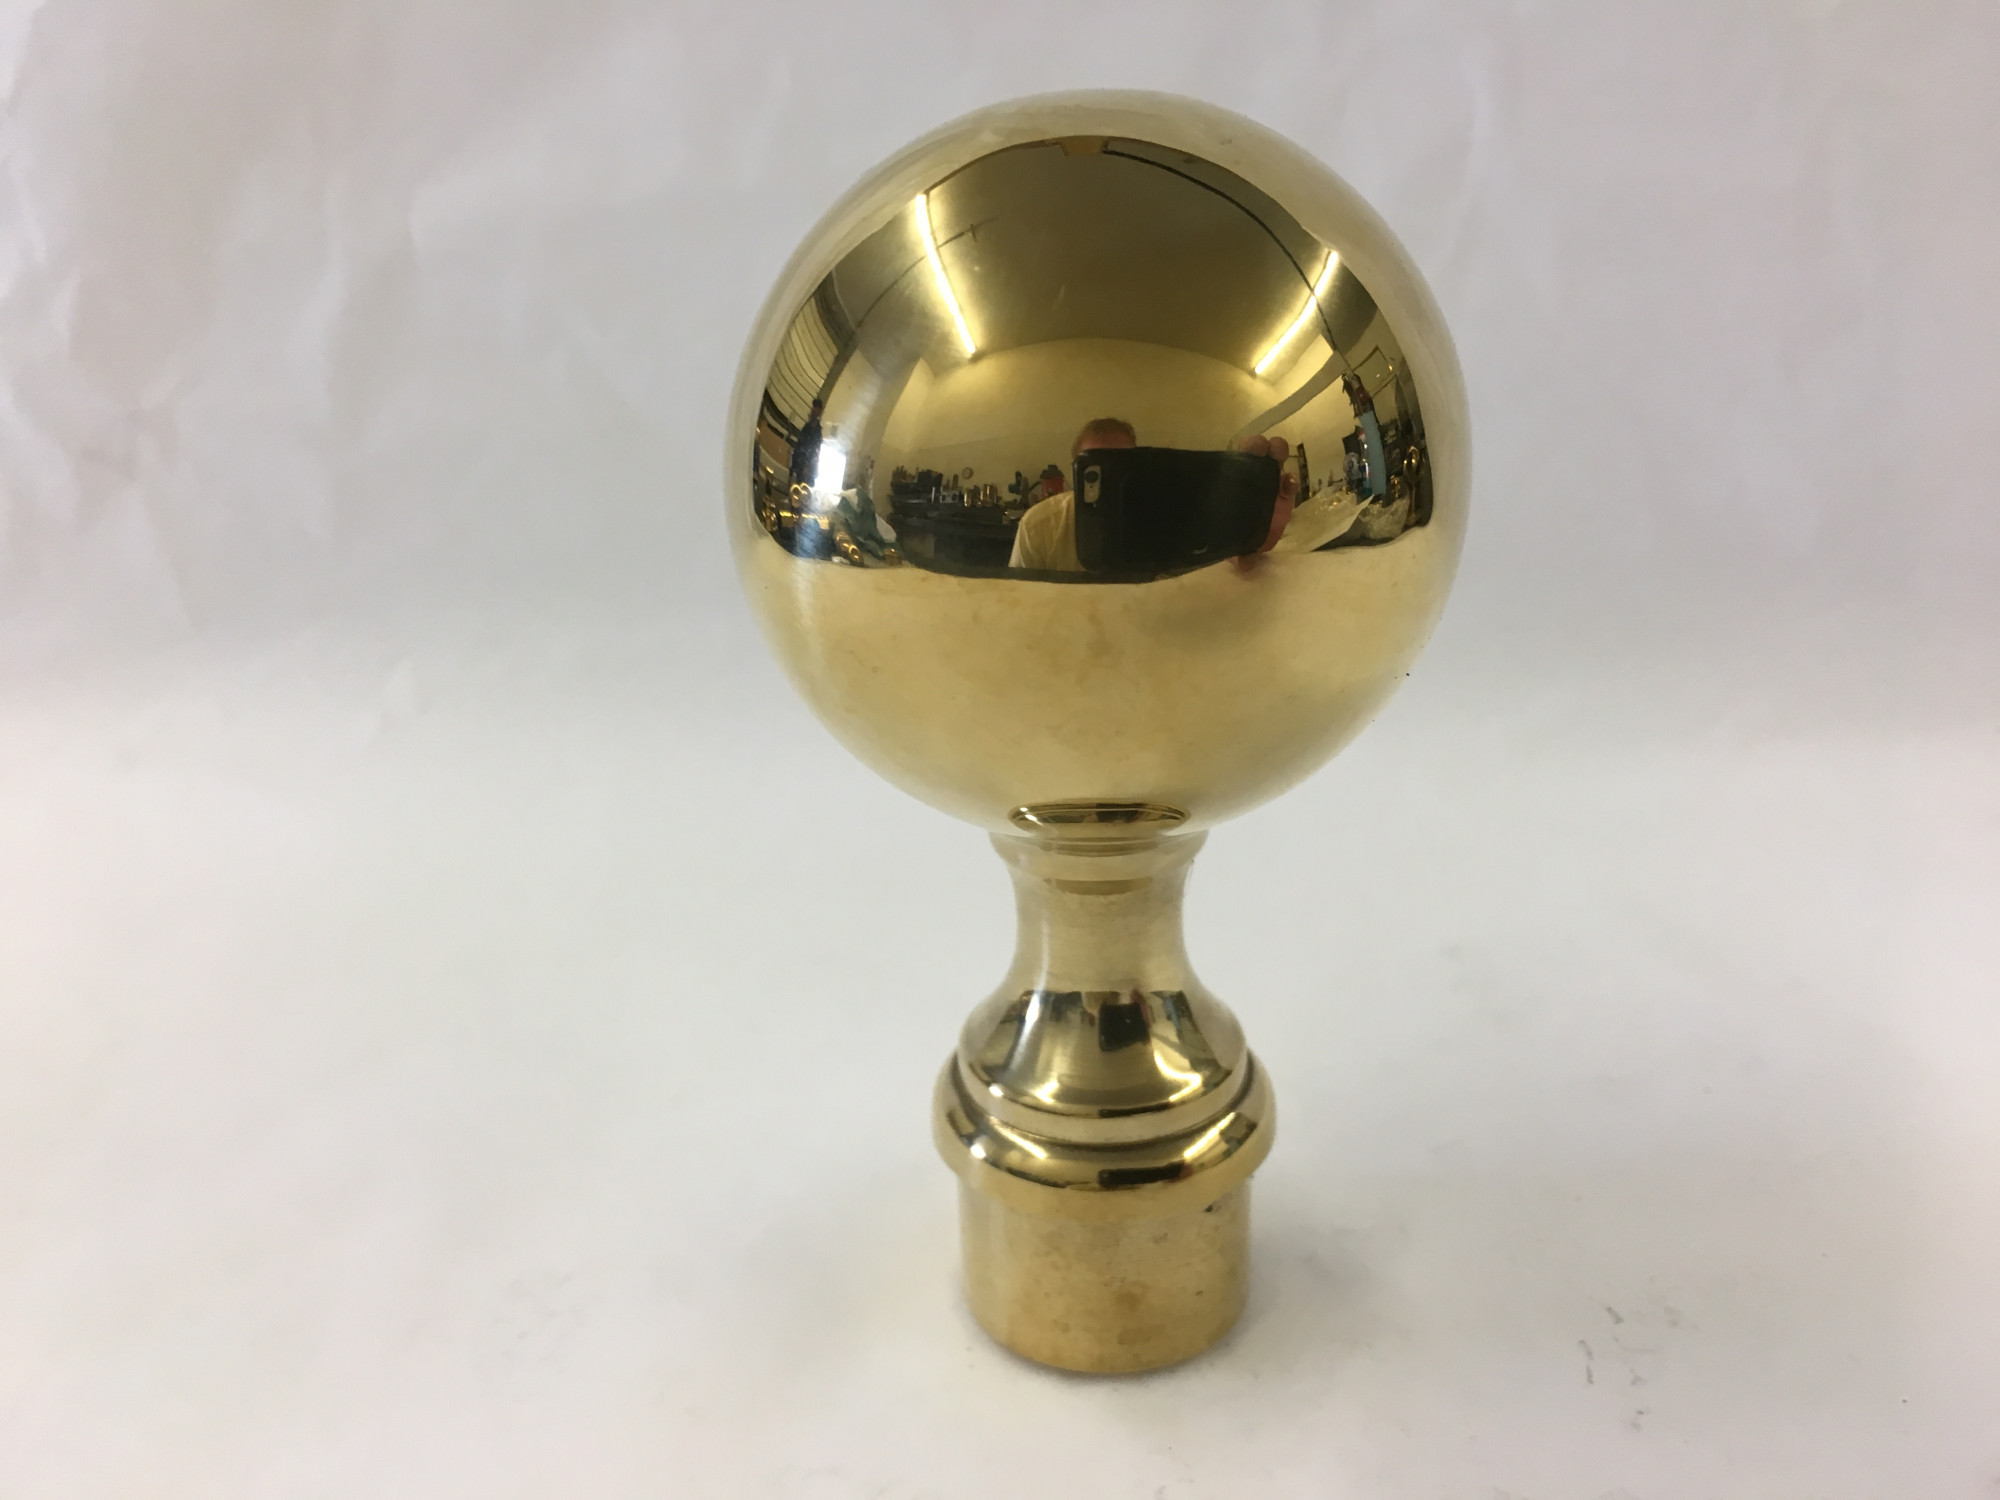 Polished Brass Ball Finial (1in)